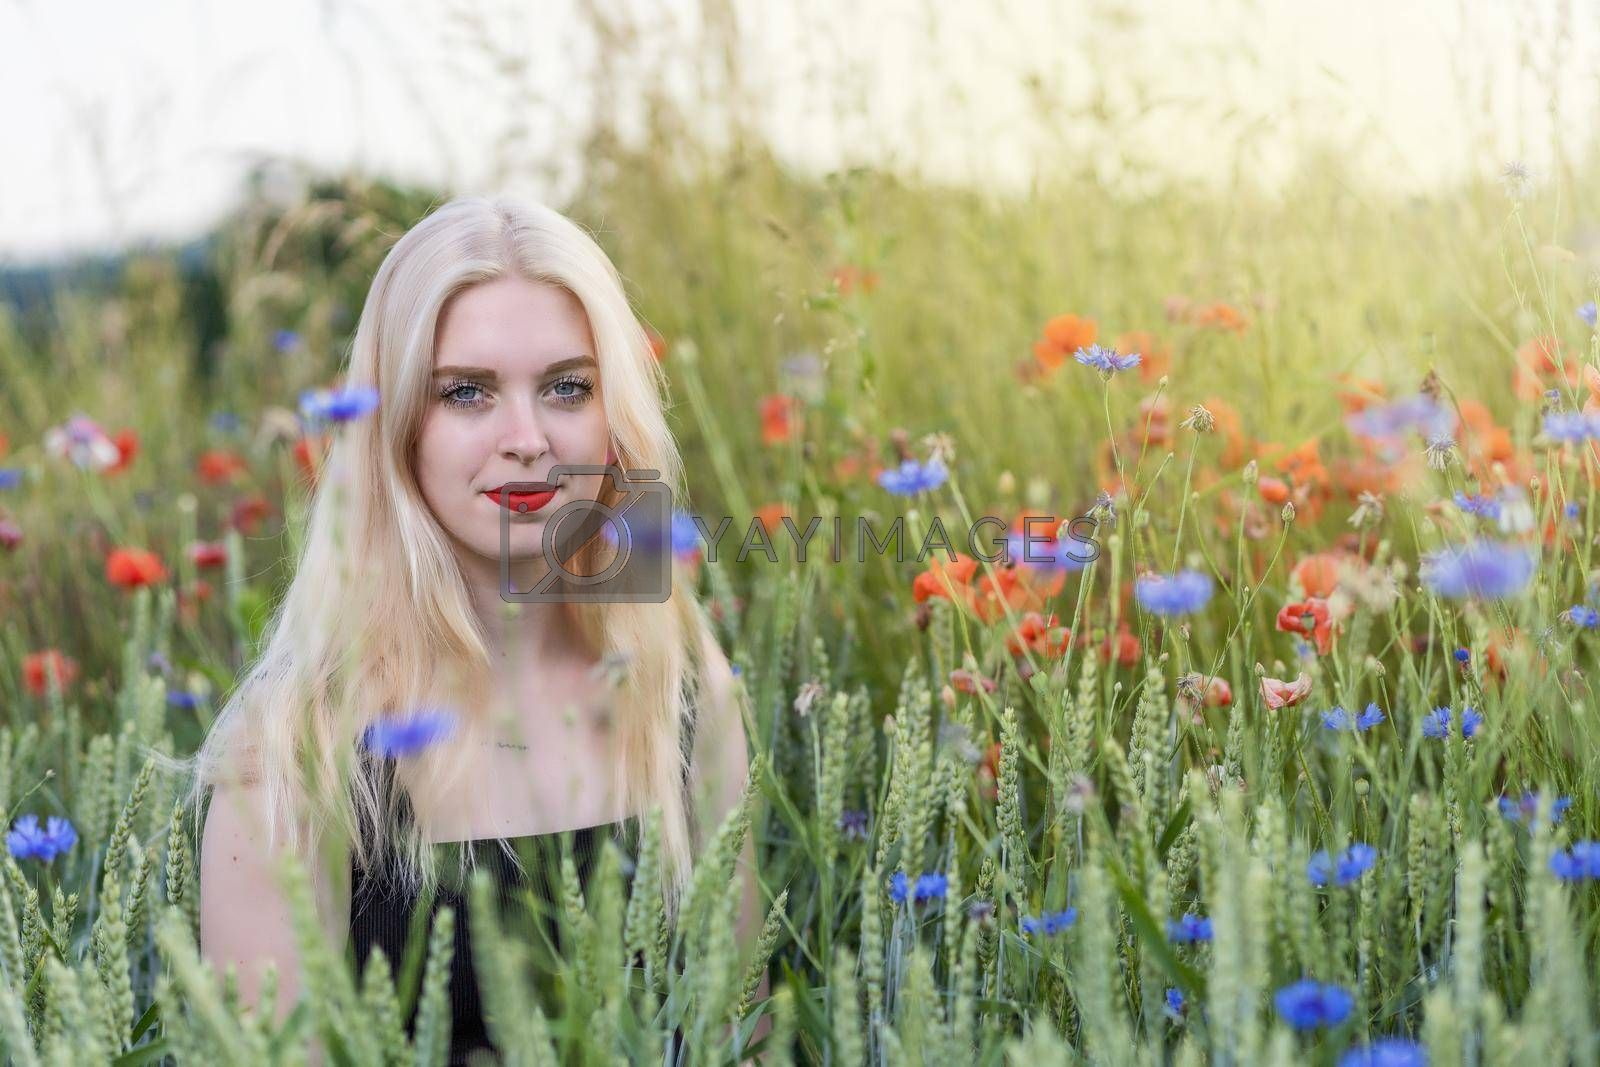 Royalty free image of Blonde young woman is posing in a cereal field with poppies and cornflowers. by Frank11